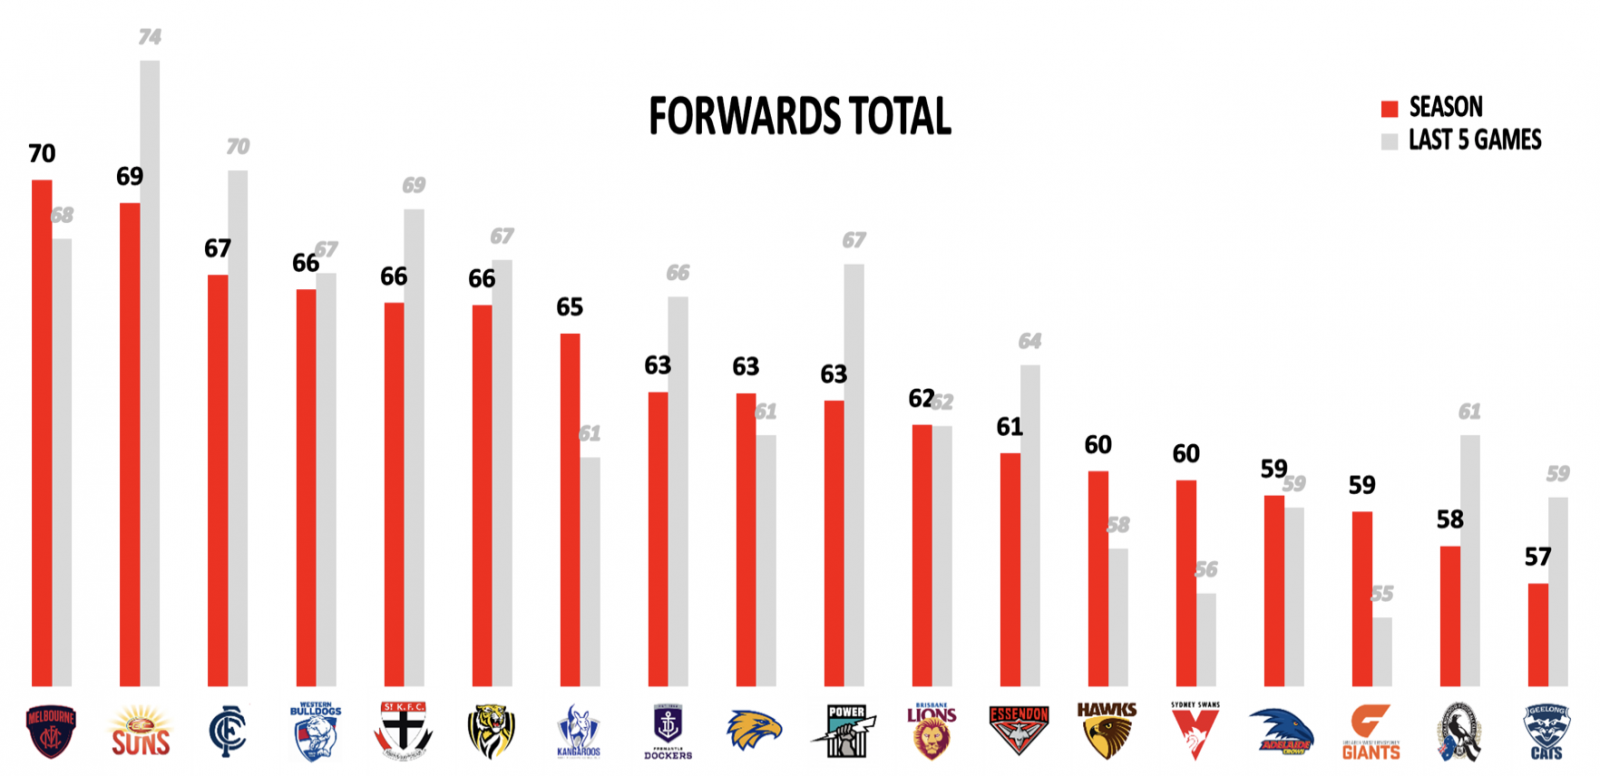 Forwards points against